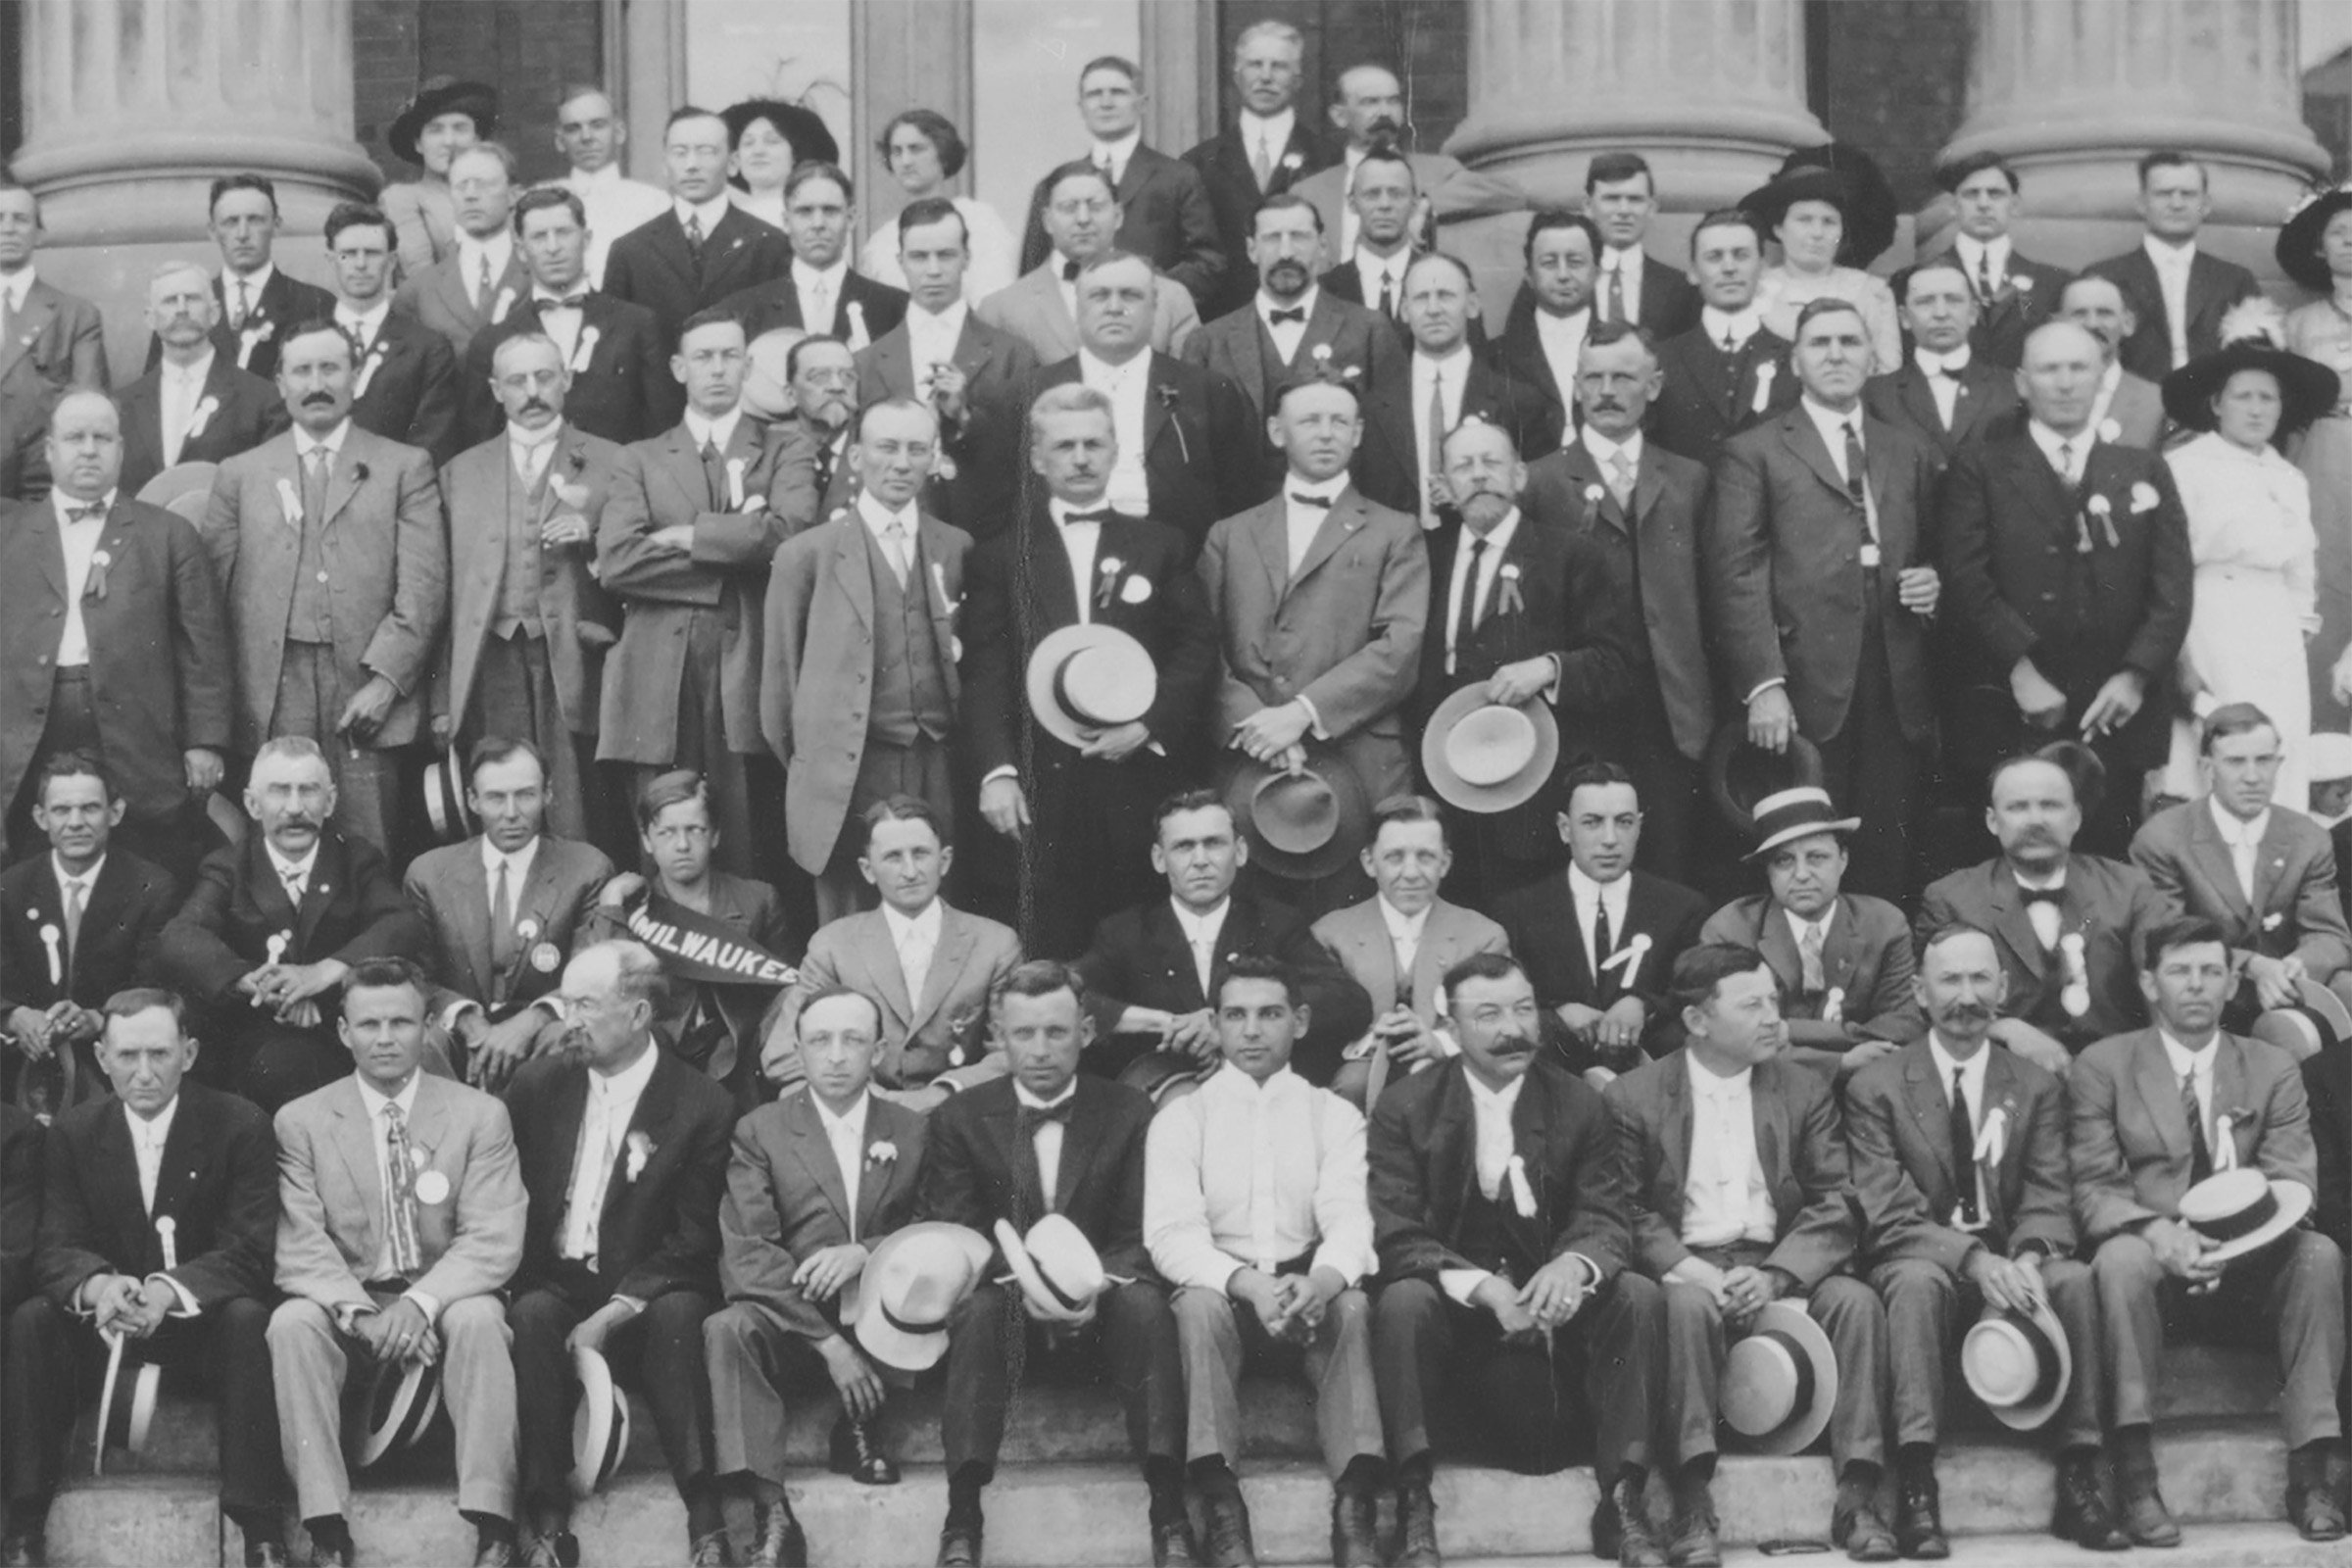 vintage photo of men in suits